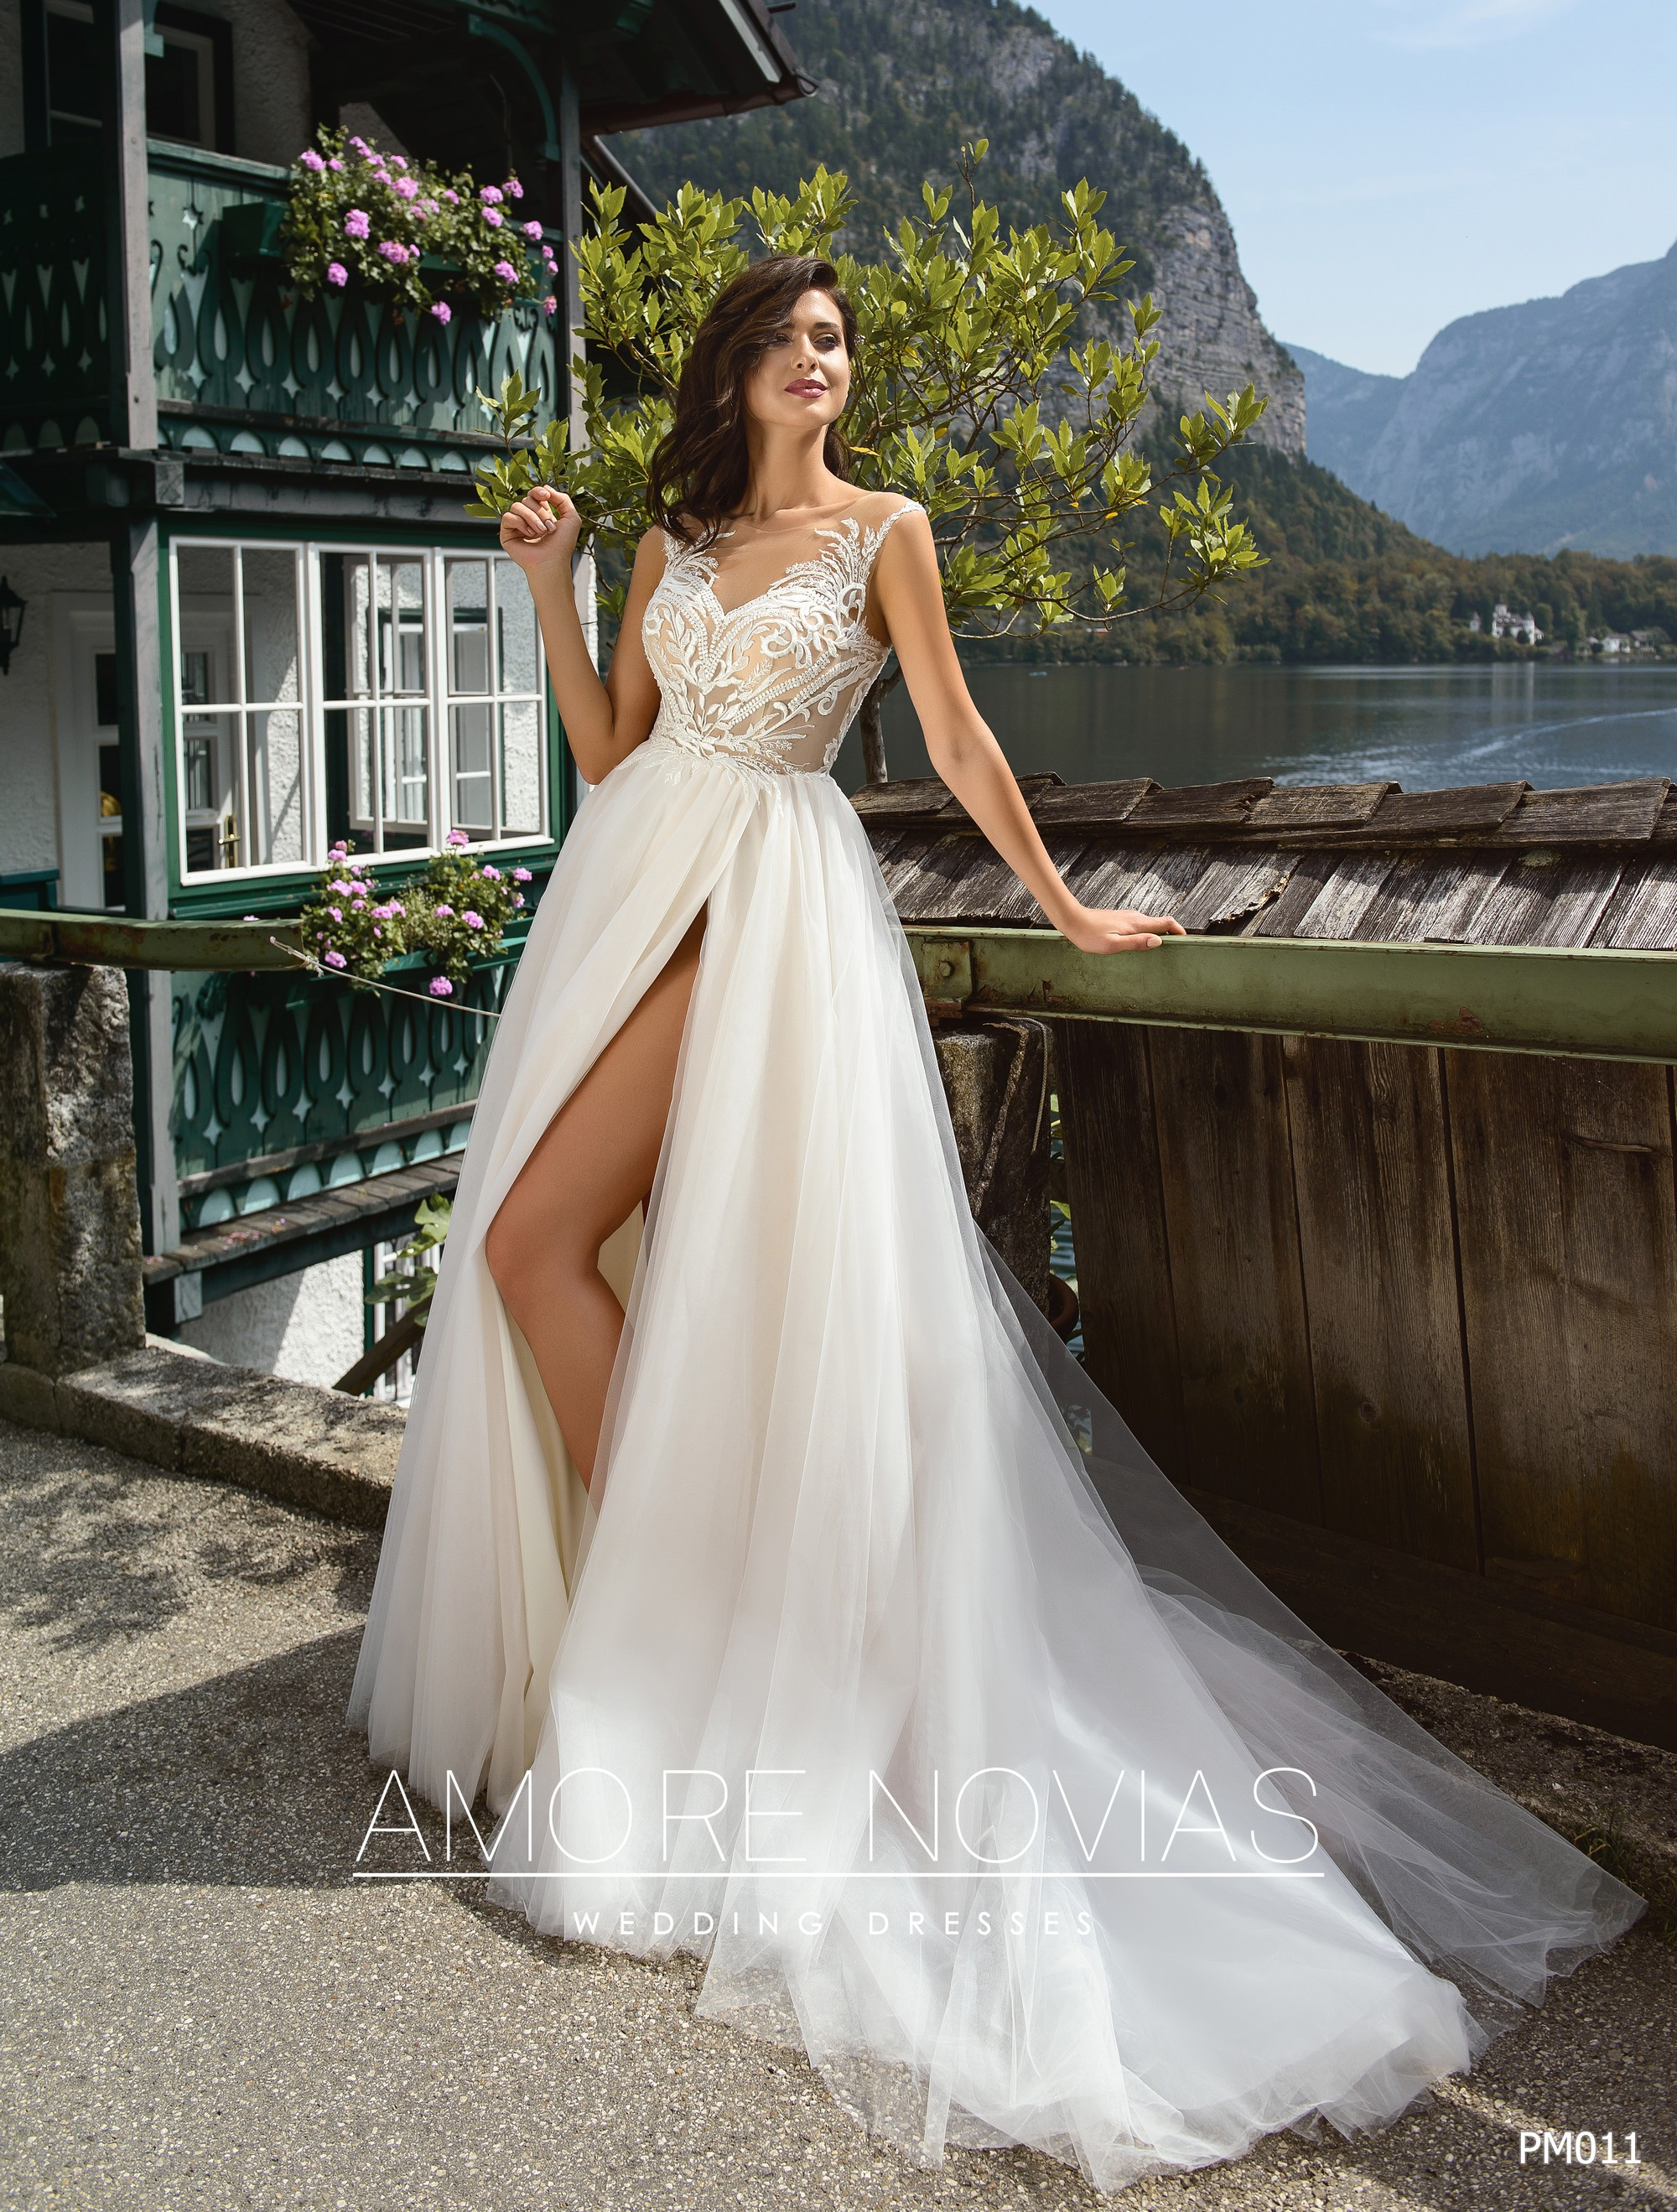 http://amore-novias.com/images/stories/virtuemart/product/pm011-------(1).jpg